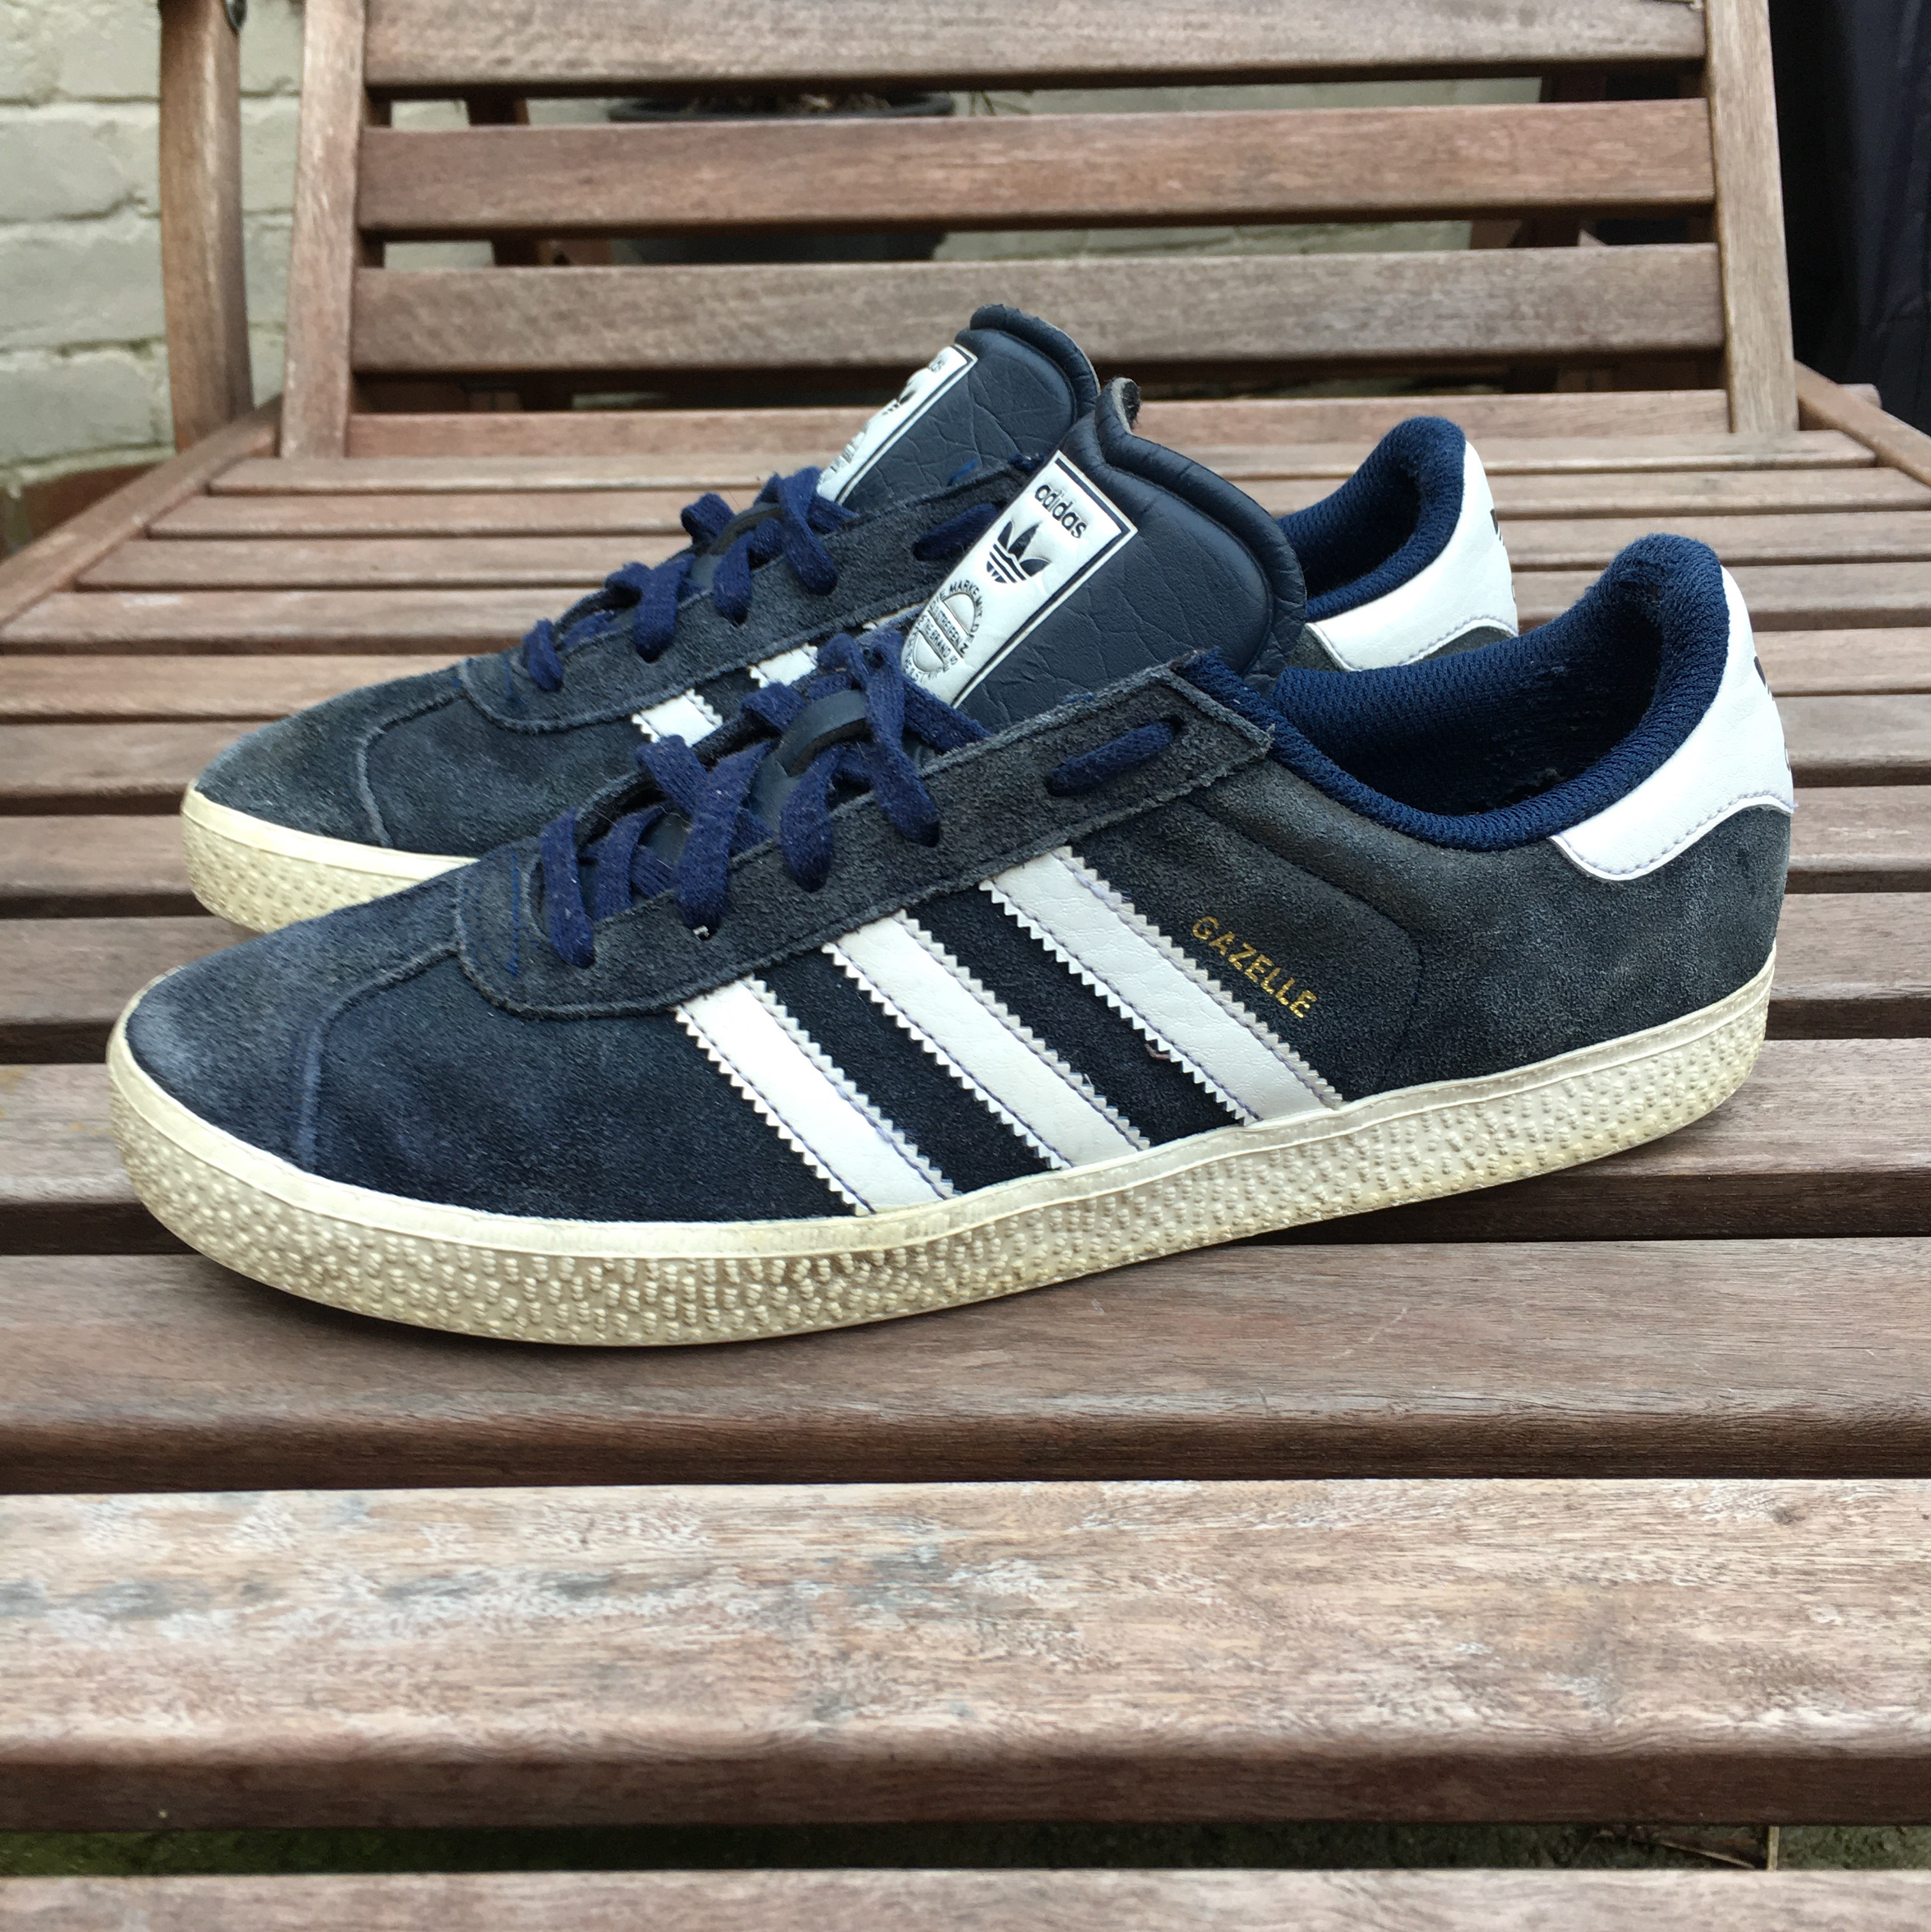 Adidas Gazelle Navy Blue Suede Trainers